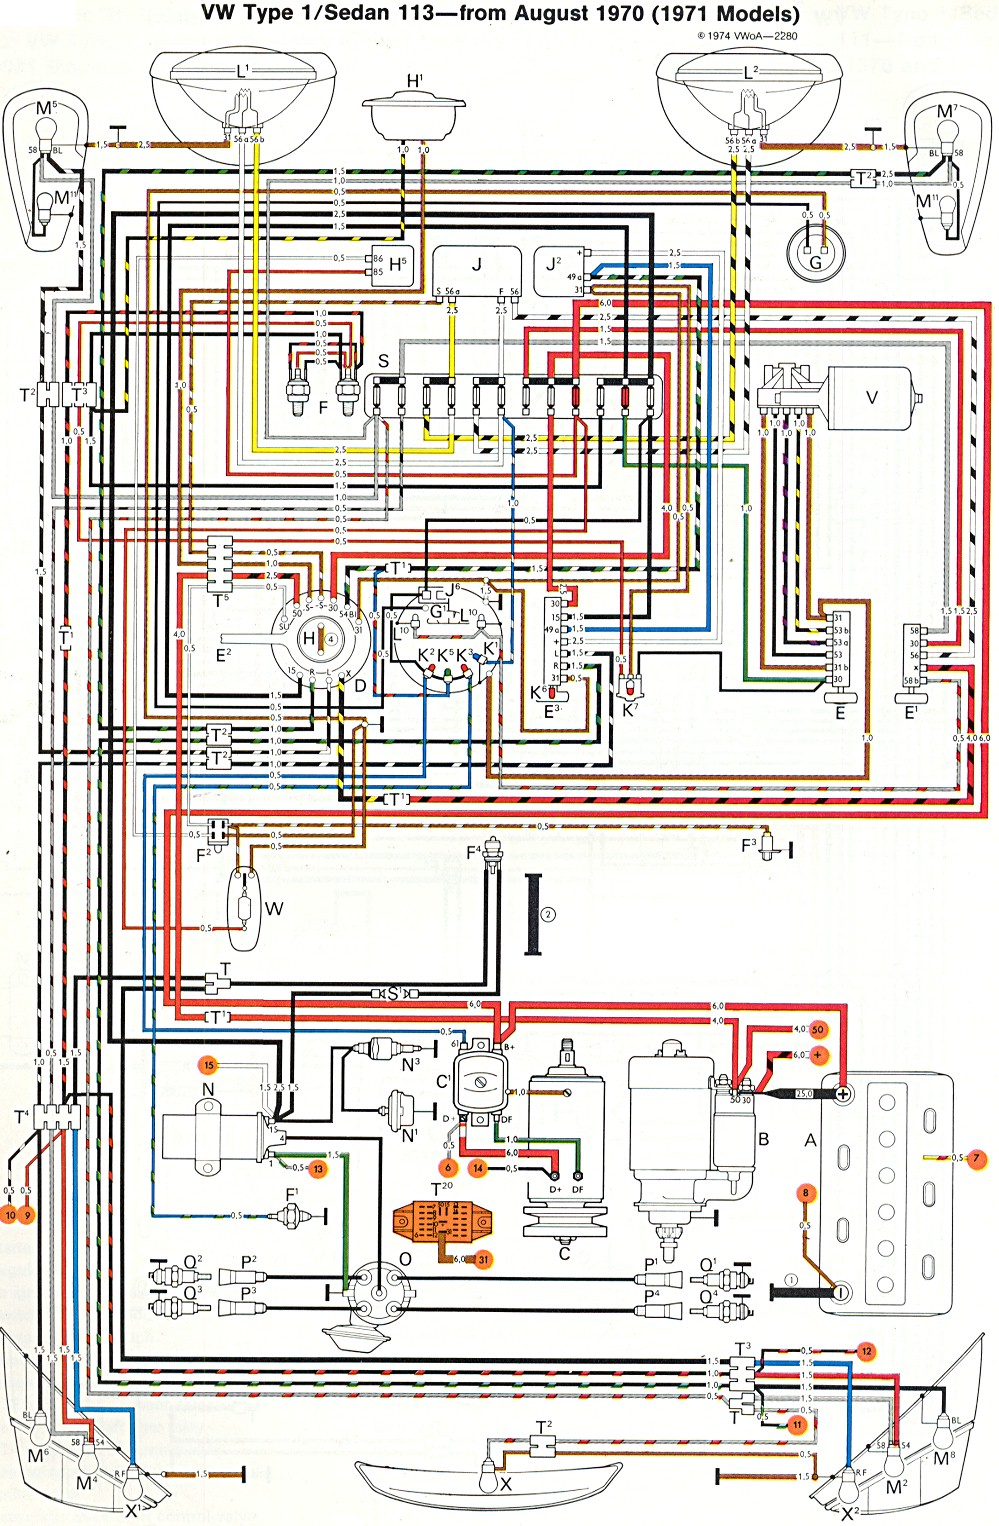 bug_super_71 1971 super beetle wiring diagram thegoldenbug com 1973 vw beetle wiring diagram at readyjetset.co